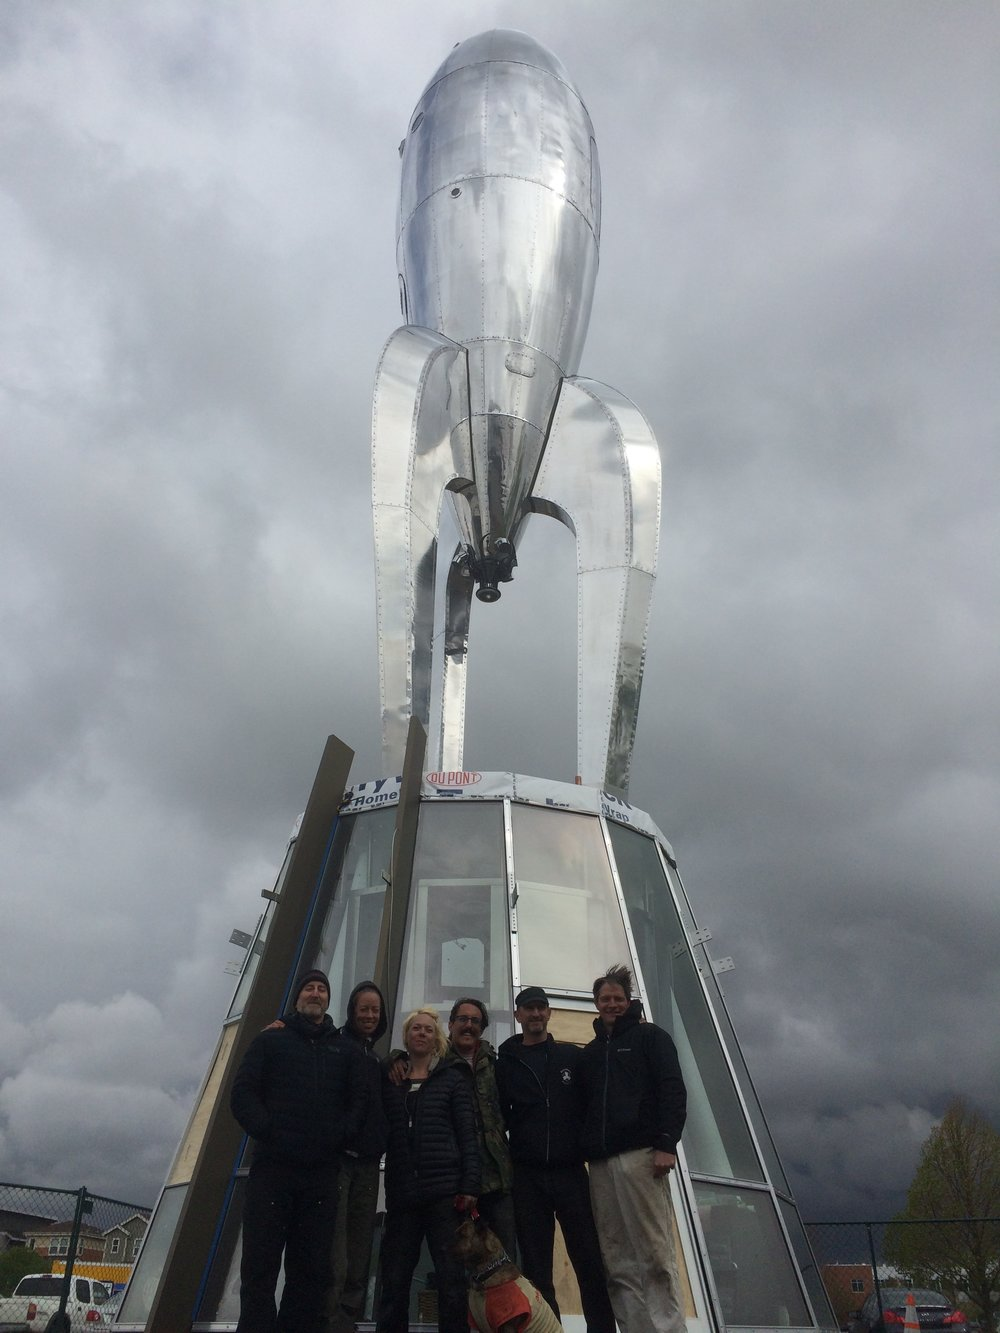 Raygun Gothic Rocketship permanently installed in Denver, CO